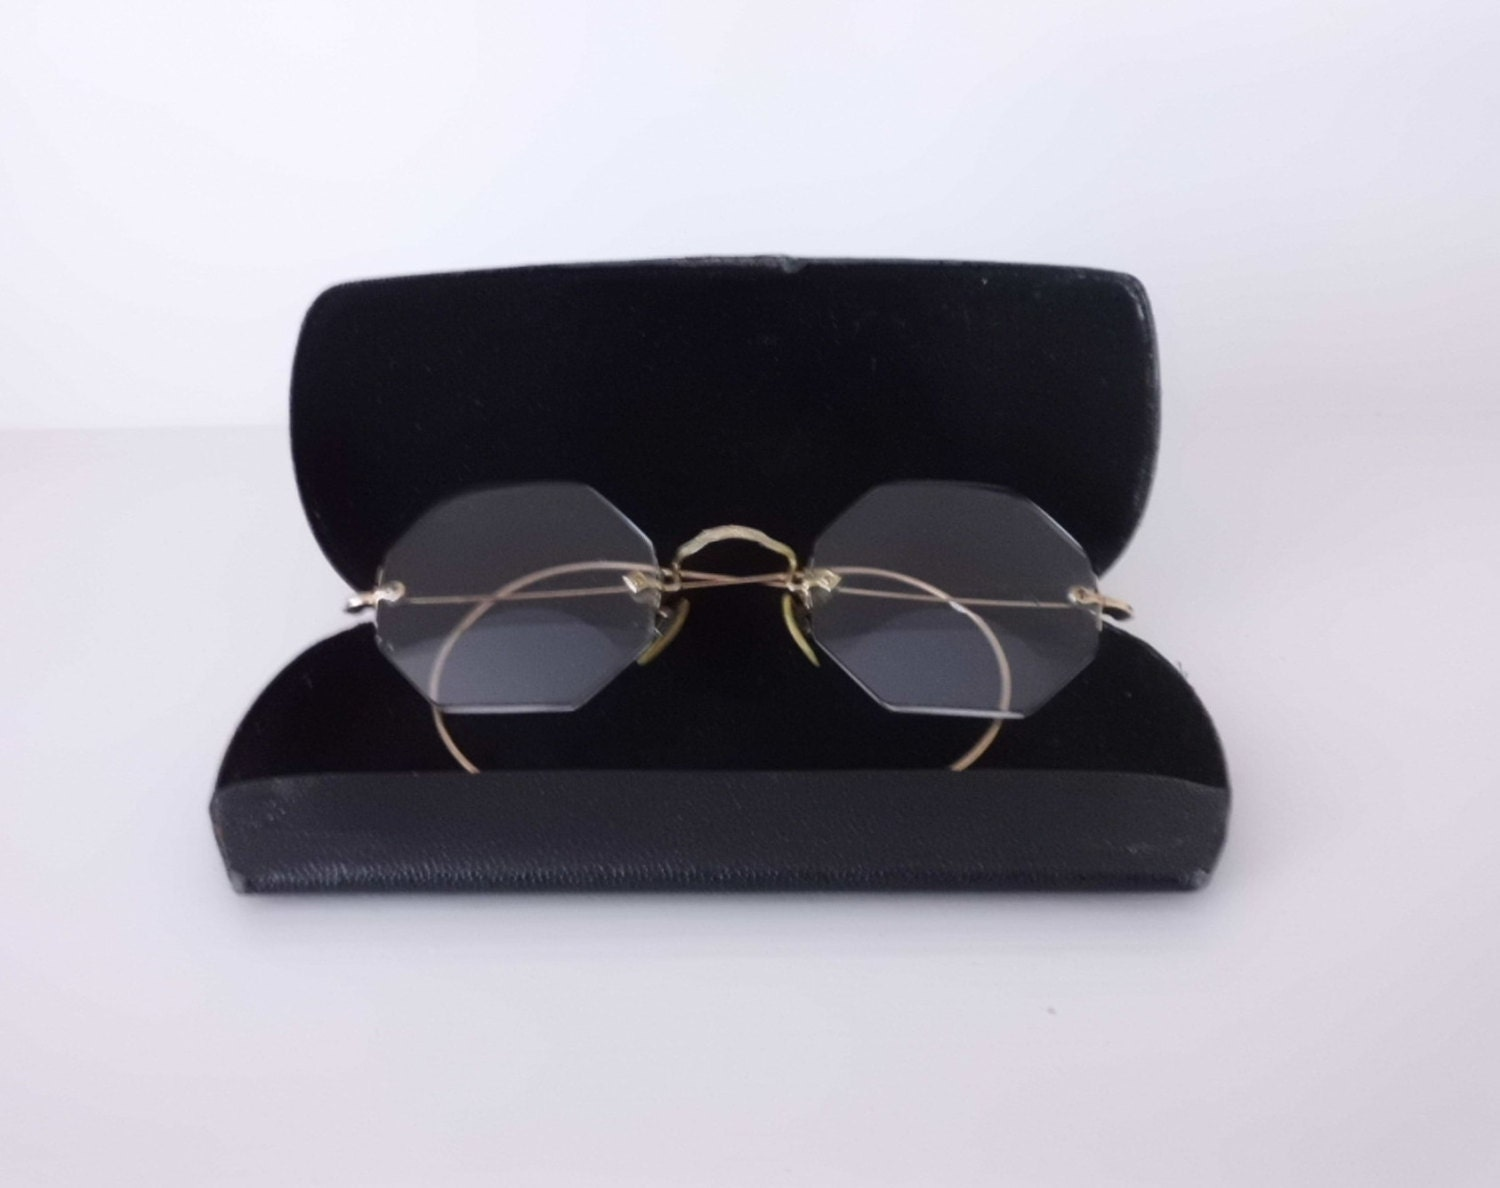 Frameless Vintage Glasses : Antique Glasses Frameless hexagonal bi-focal by GramzAttic